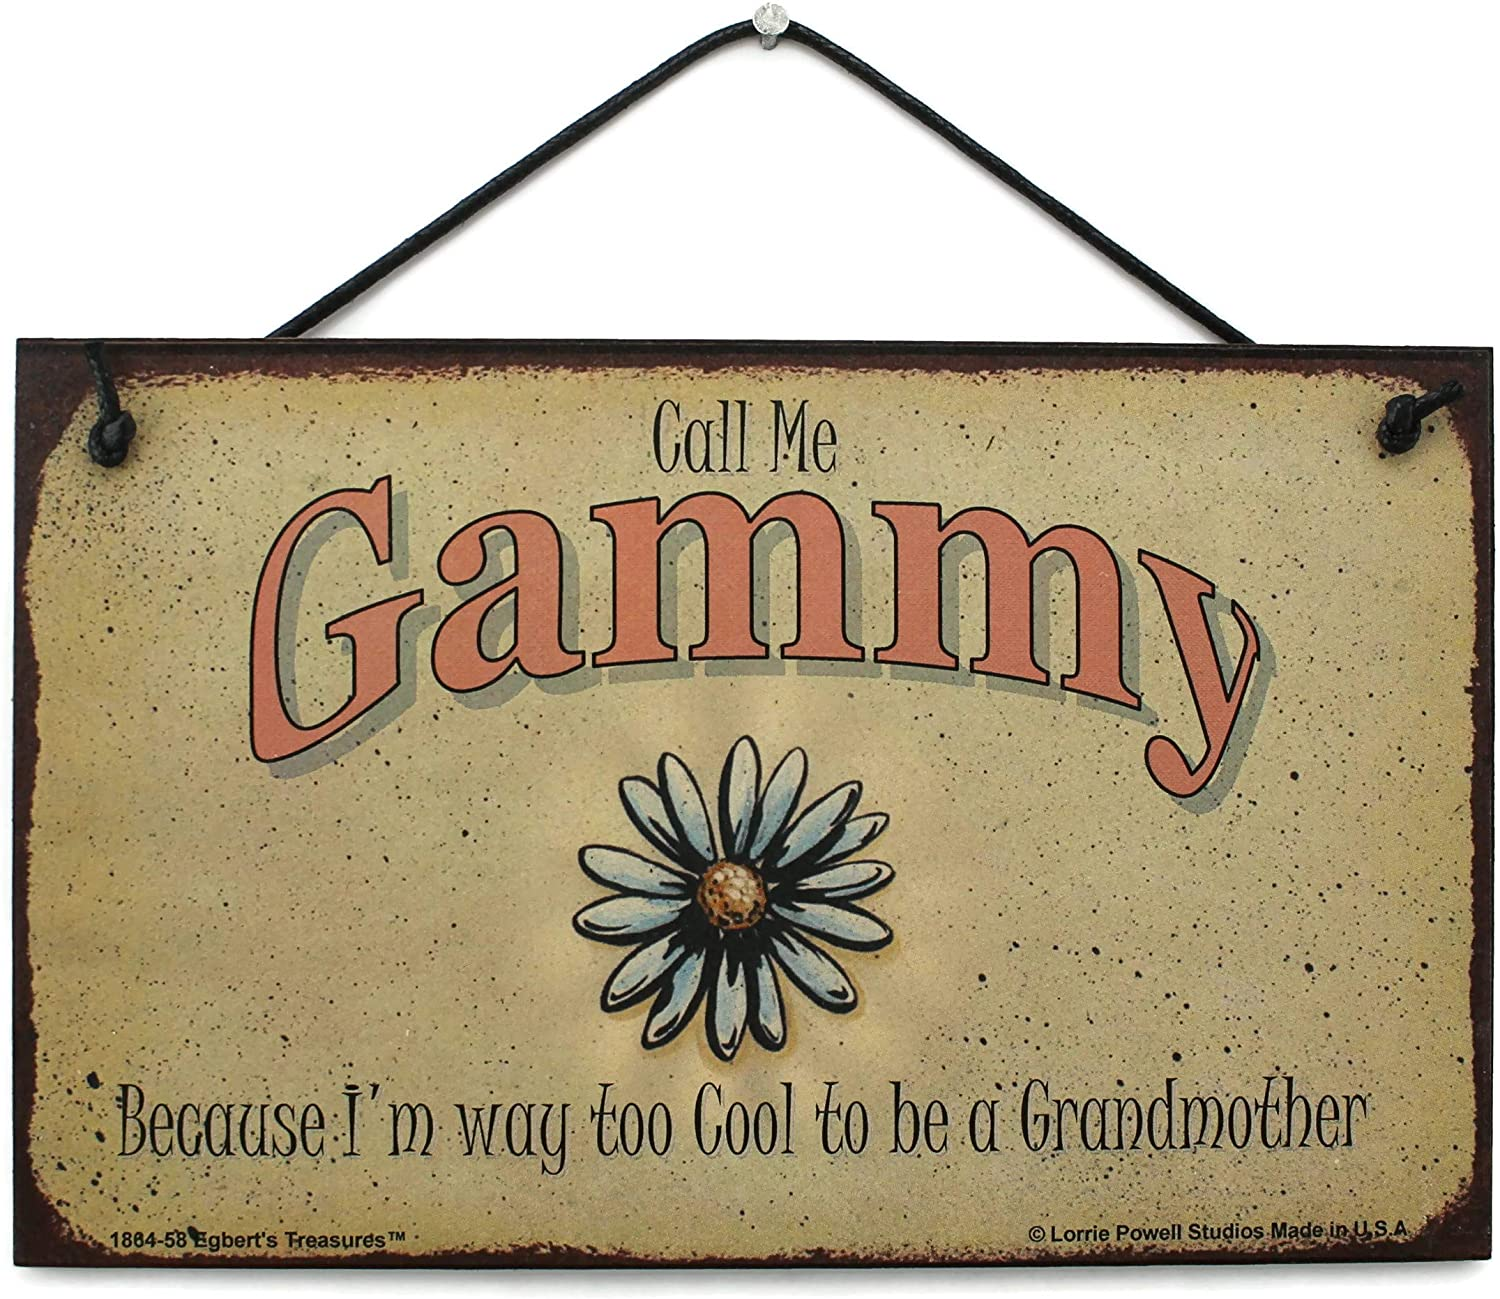 Egbert's Treasures 5x8 Vintage Style Sign with Daisy Saying, Call Me Gammy Because I'm Way Too Cool to be a Grandmother Decorative Fun Universal Household Signs from